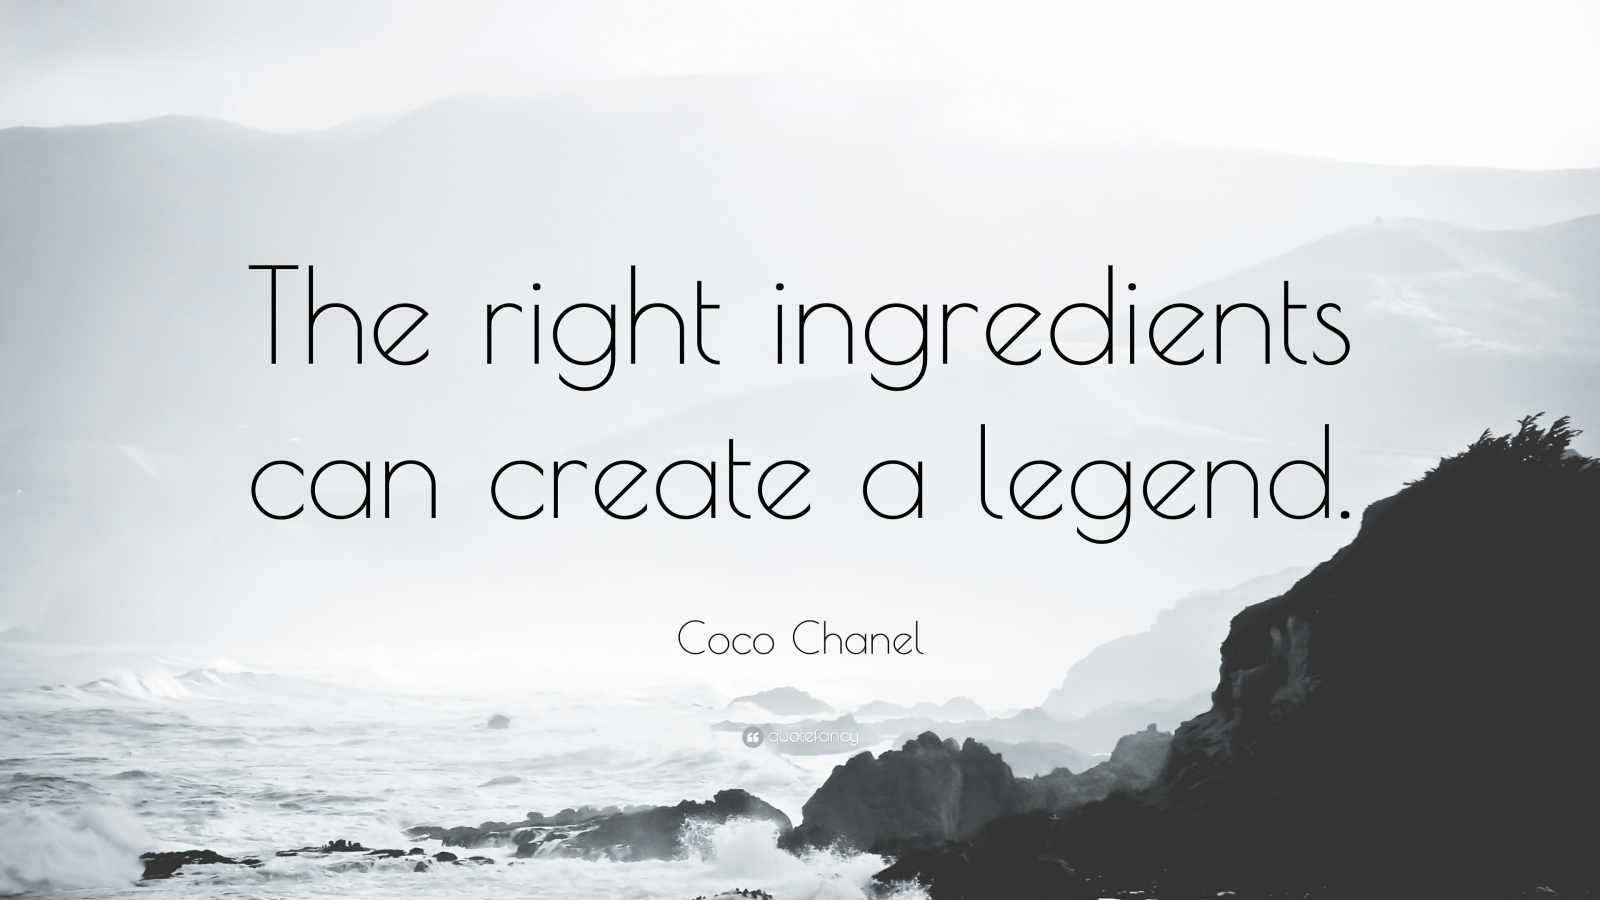 Smile Quotes Wallpaper Free Download Download Coco Chanel Quotes Wallpaper Gallery